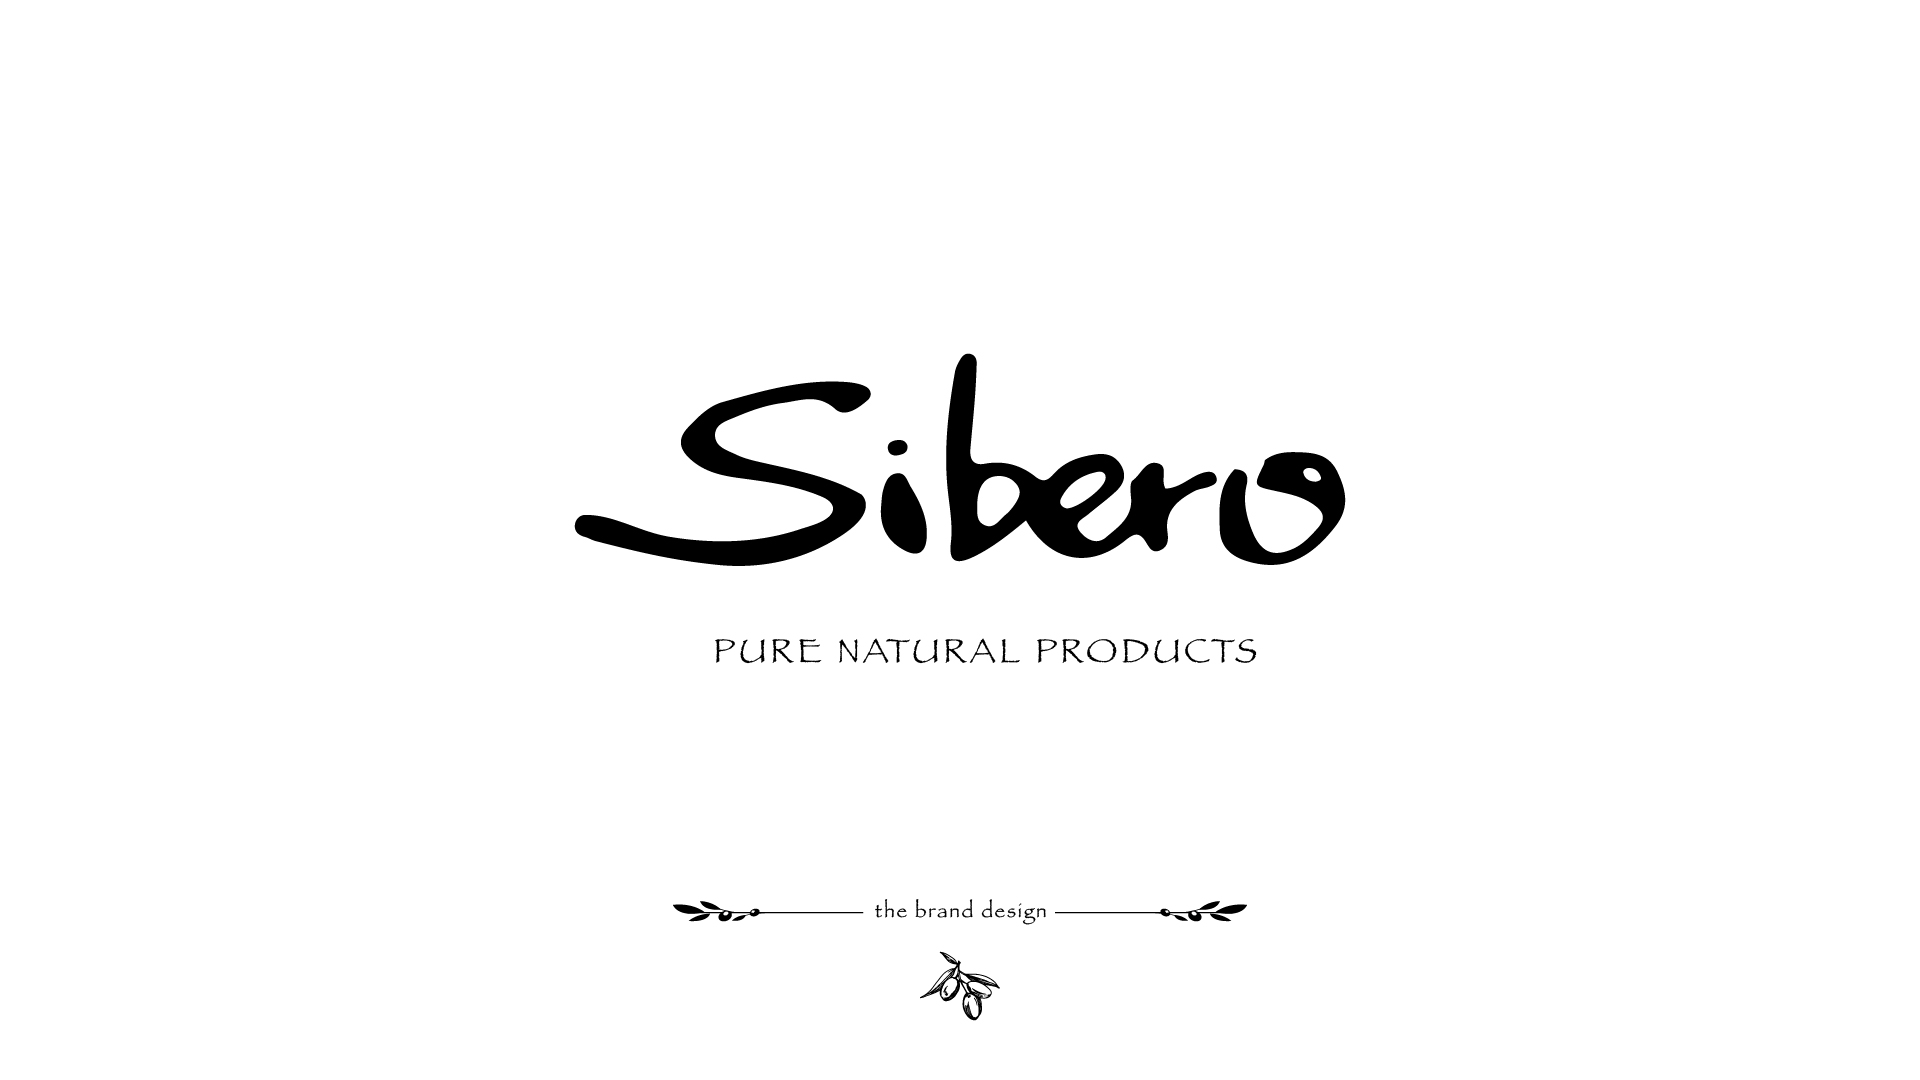 handmade soap, logo design